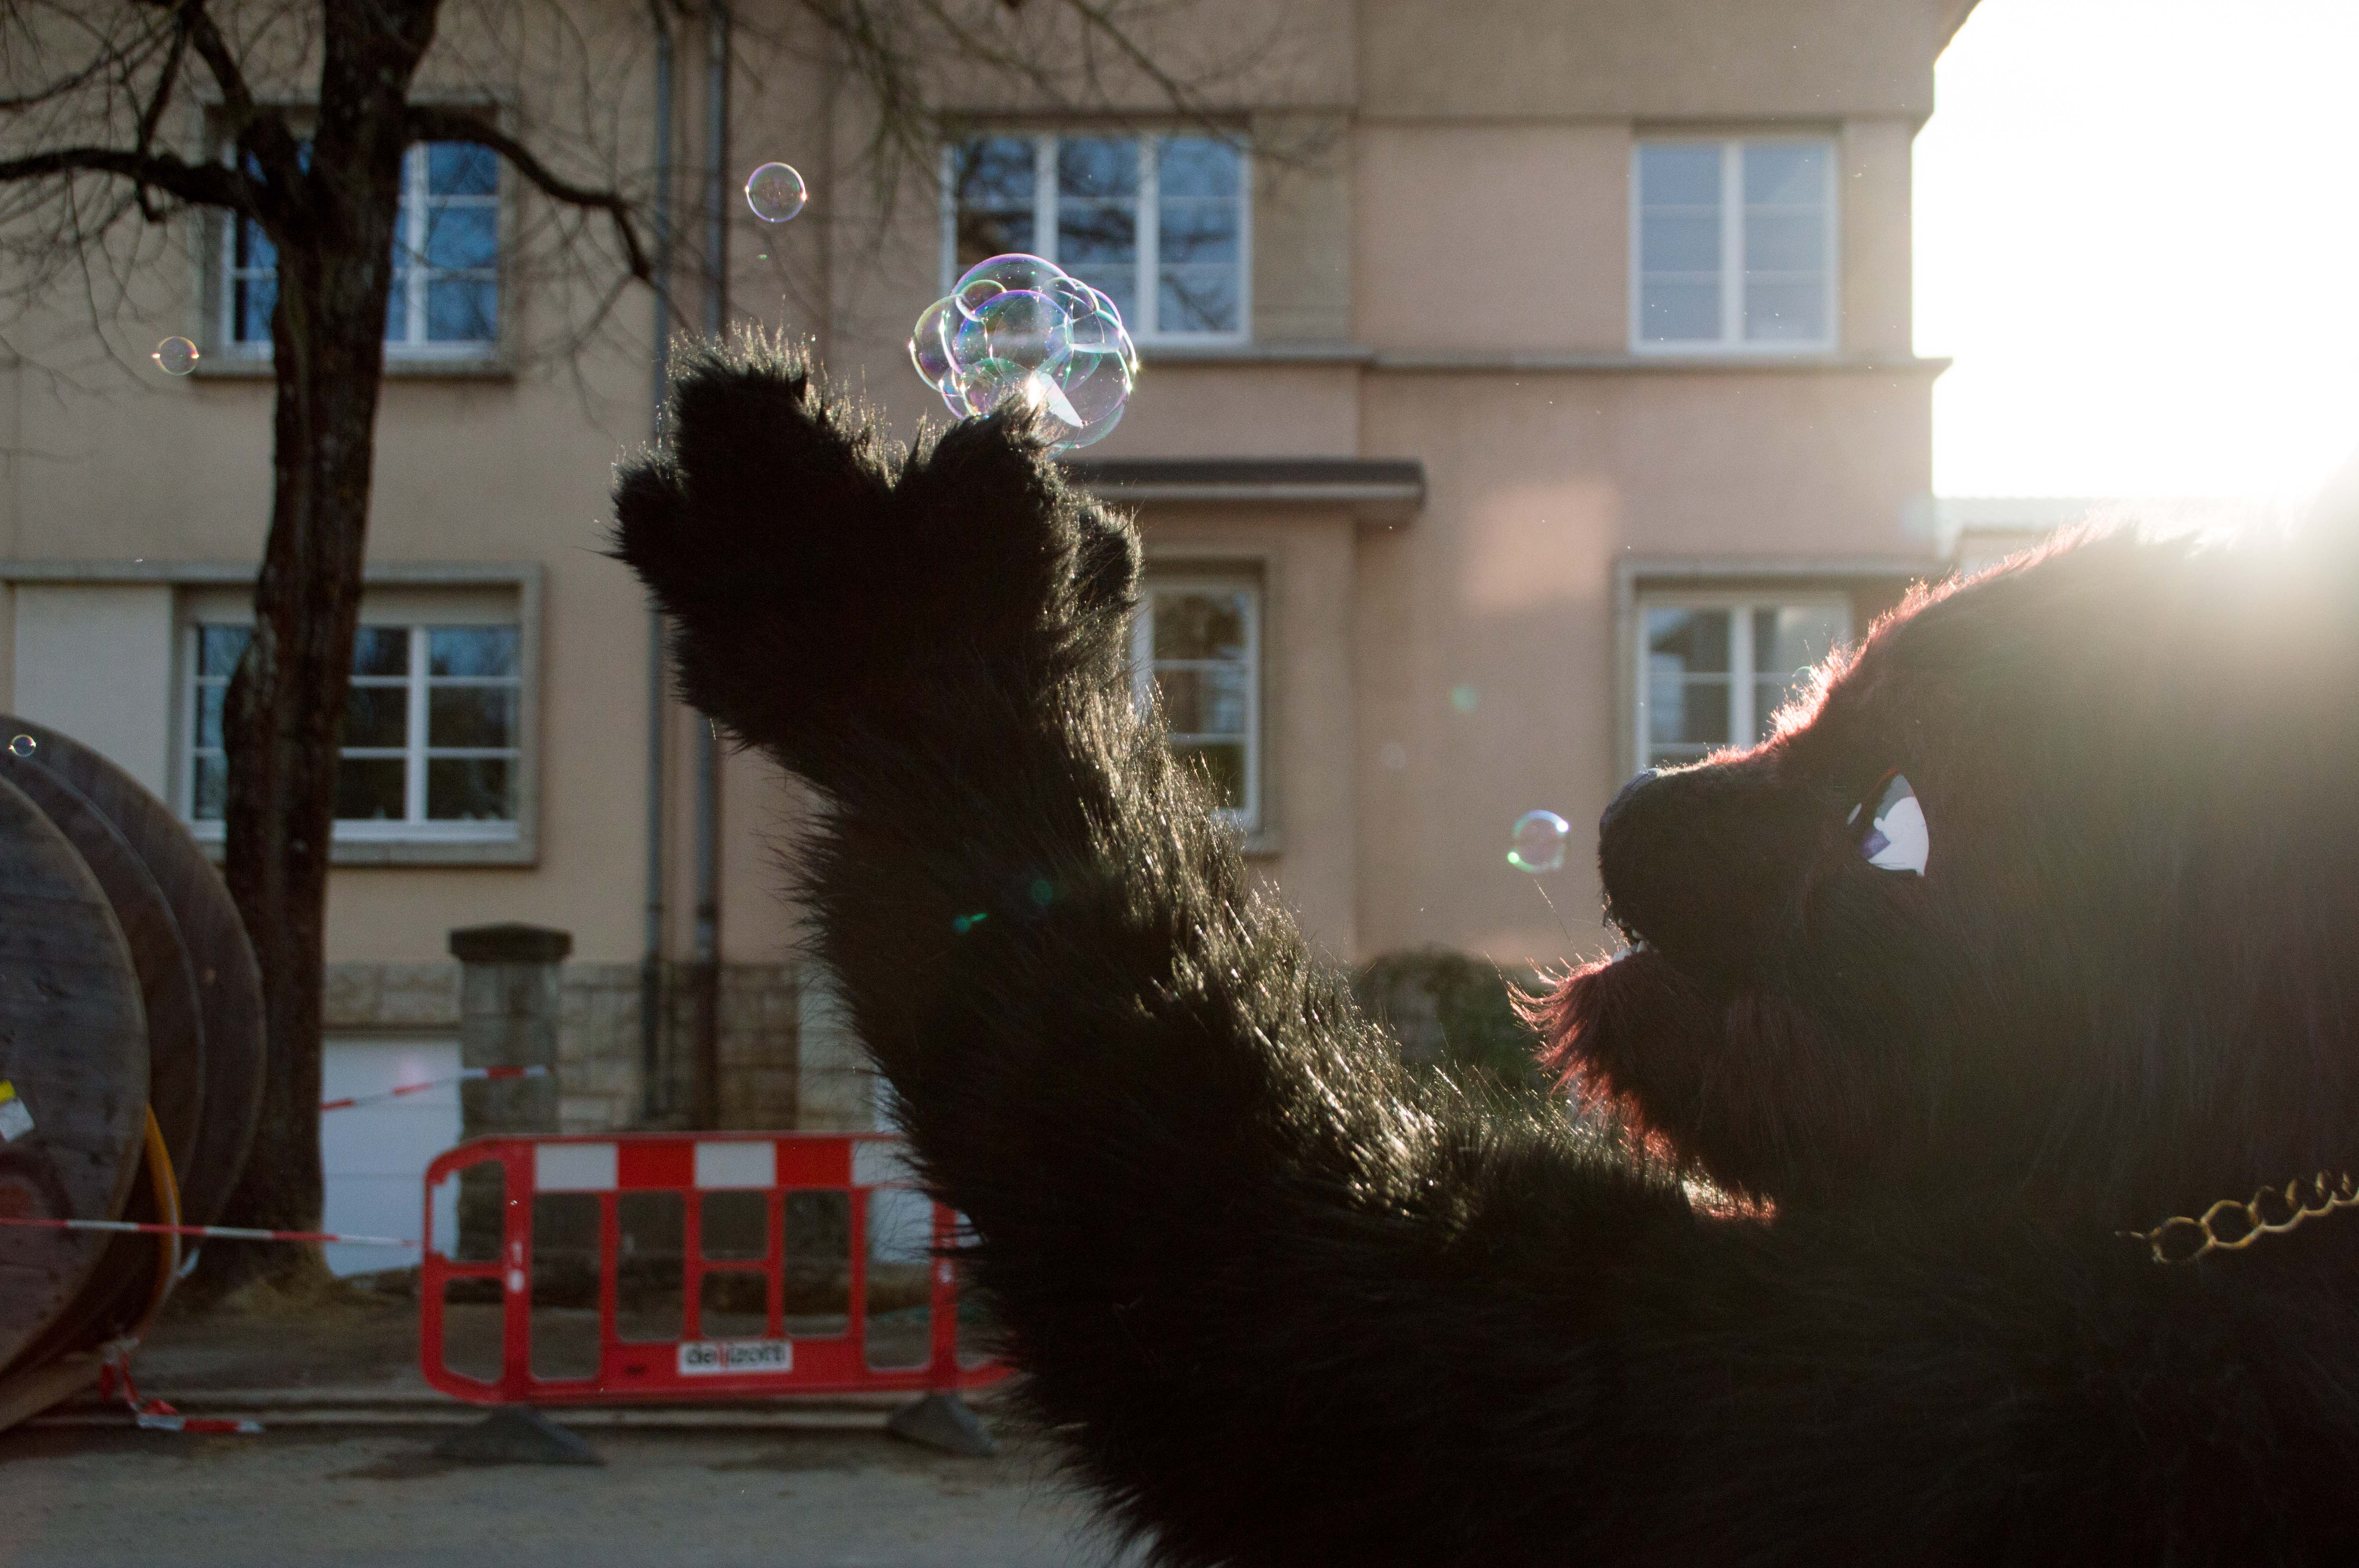 Furry Bubbles 2016 Photos Sam van Maris Geeks Life Luxembourg-0578